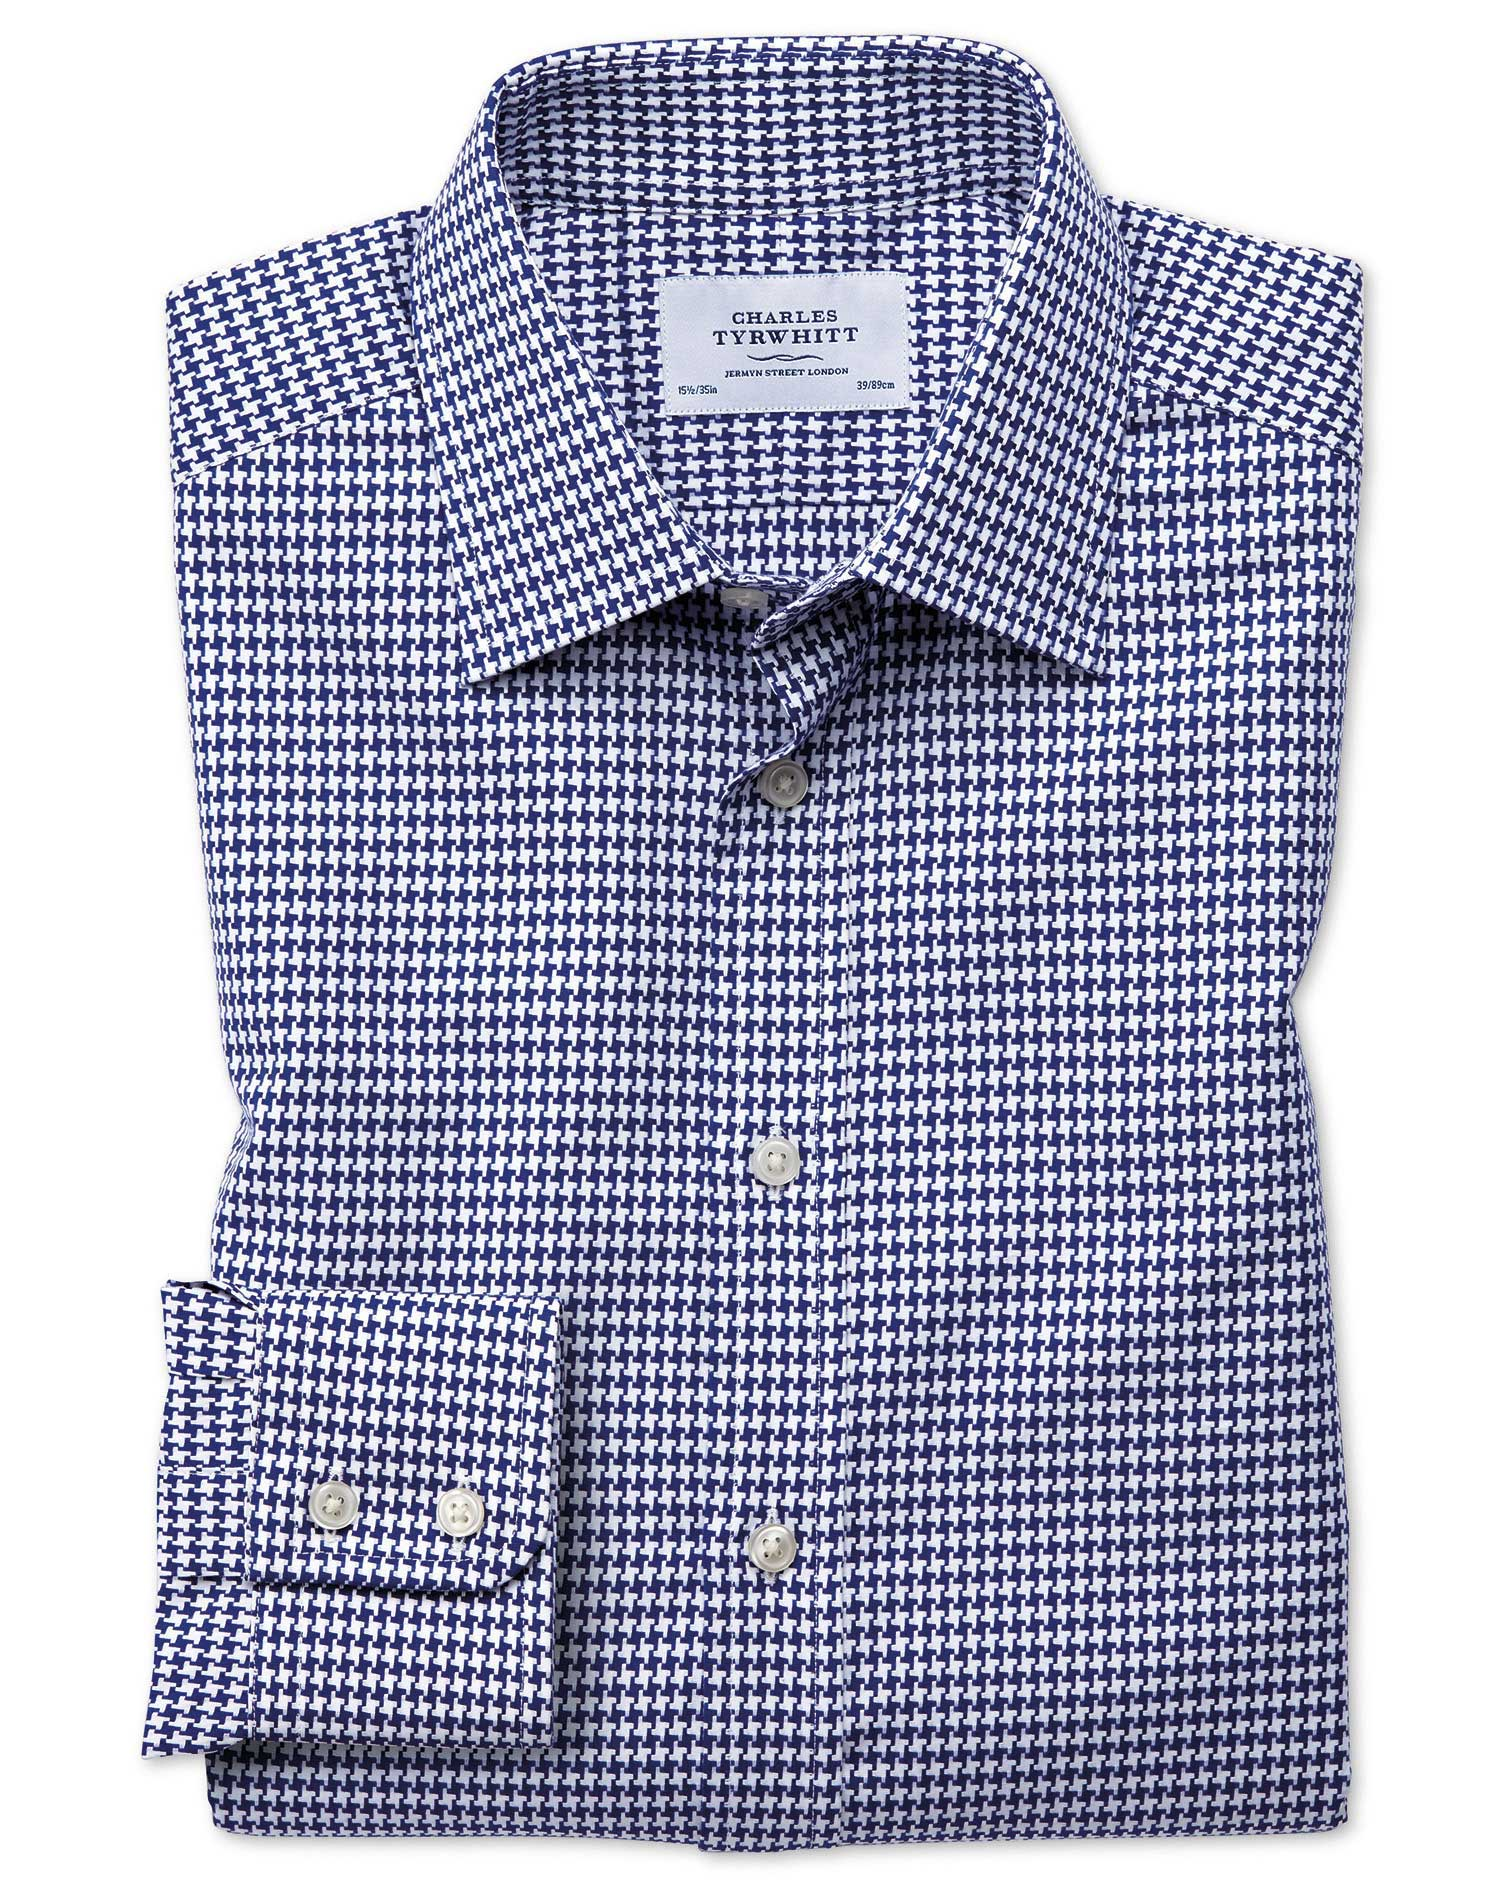 Classic Fit Large Puppytooth Blue Cotton Formal Shirt Single Cuff Size 16.5/36 by Charles Tyrwhitt